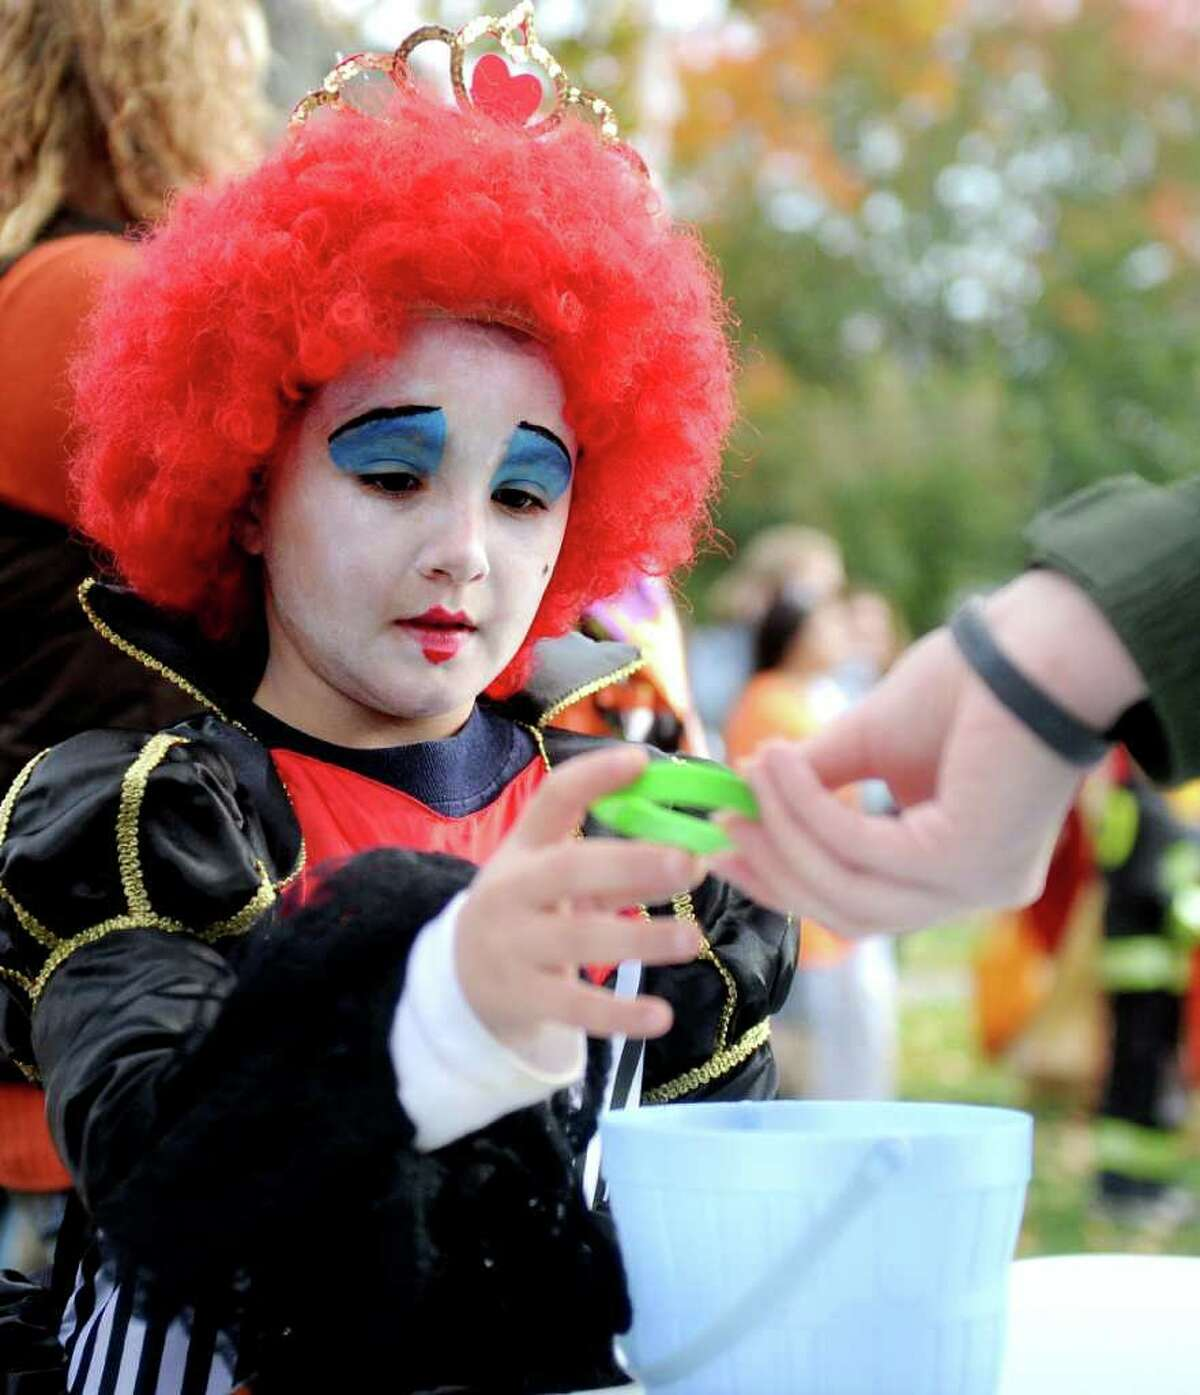 Alexis Torri, 7, gets candy during the Trick or Treat on Safety Street event in Fairfield on Friday, October 29, 2010.